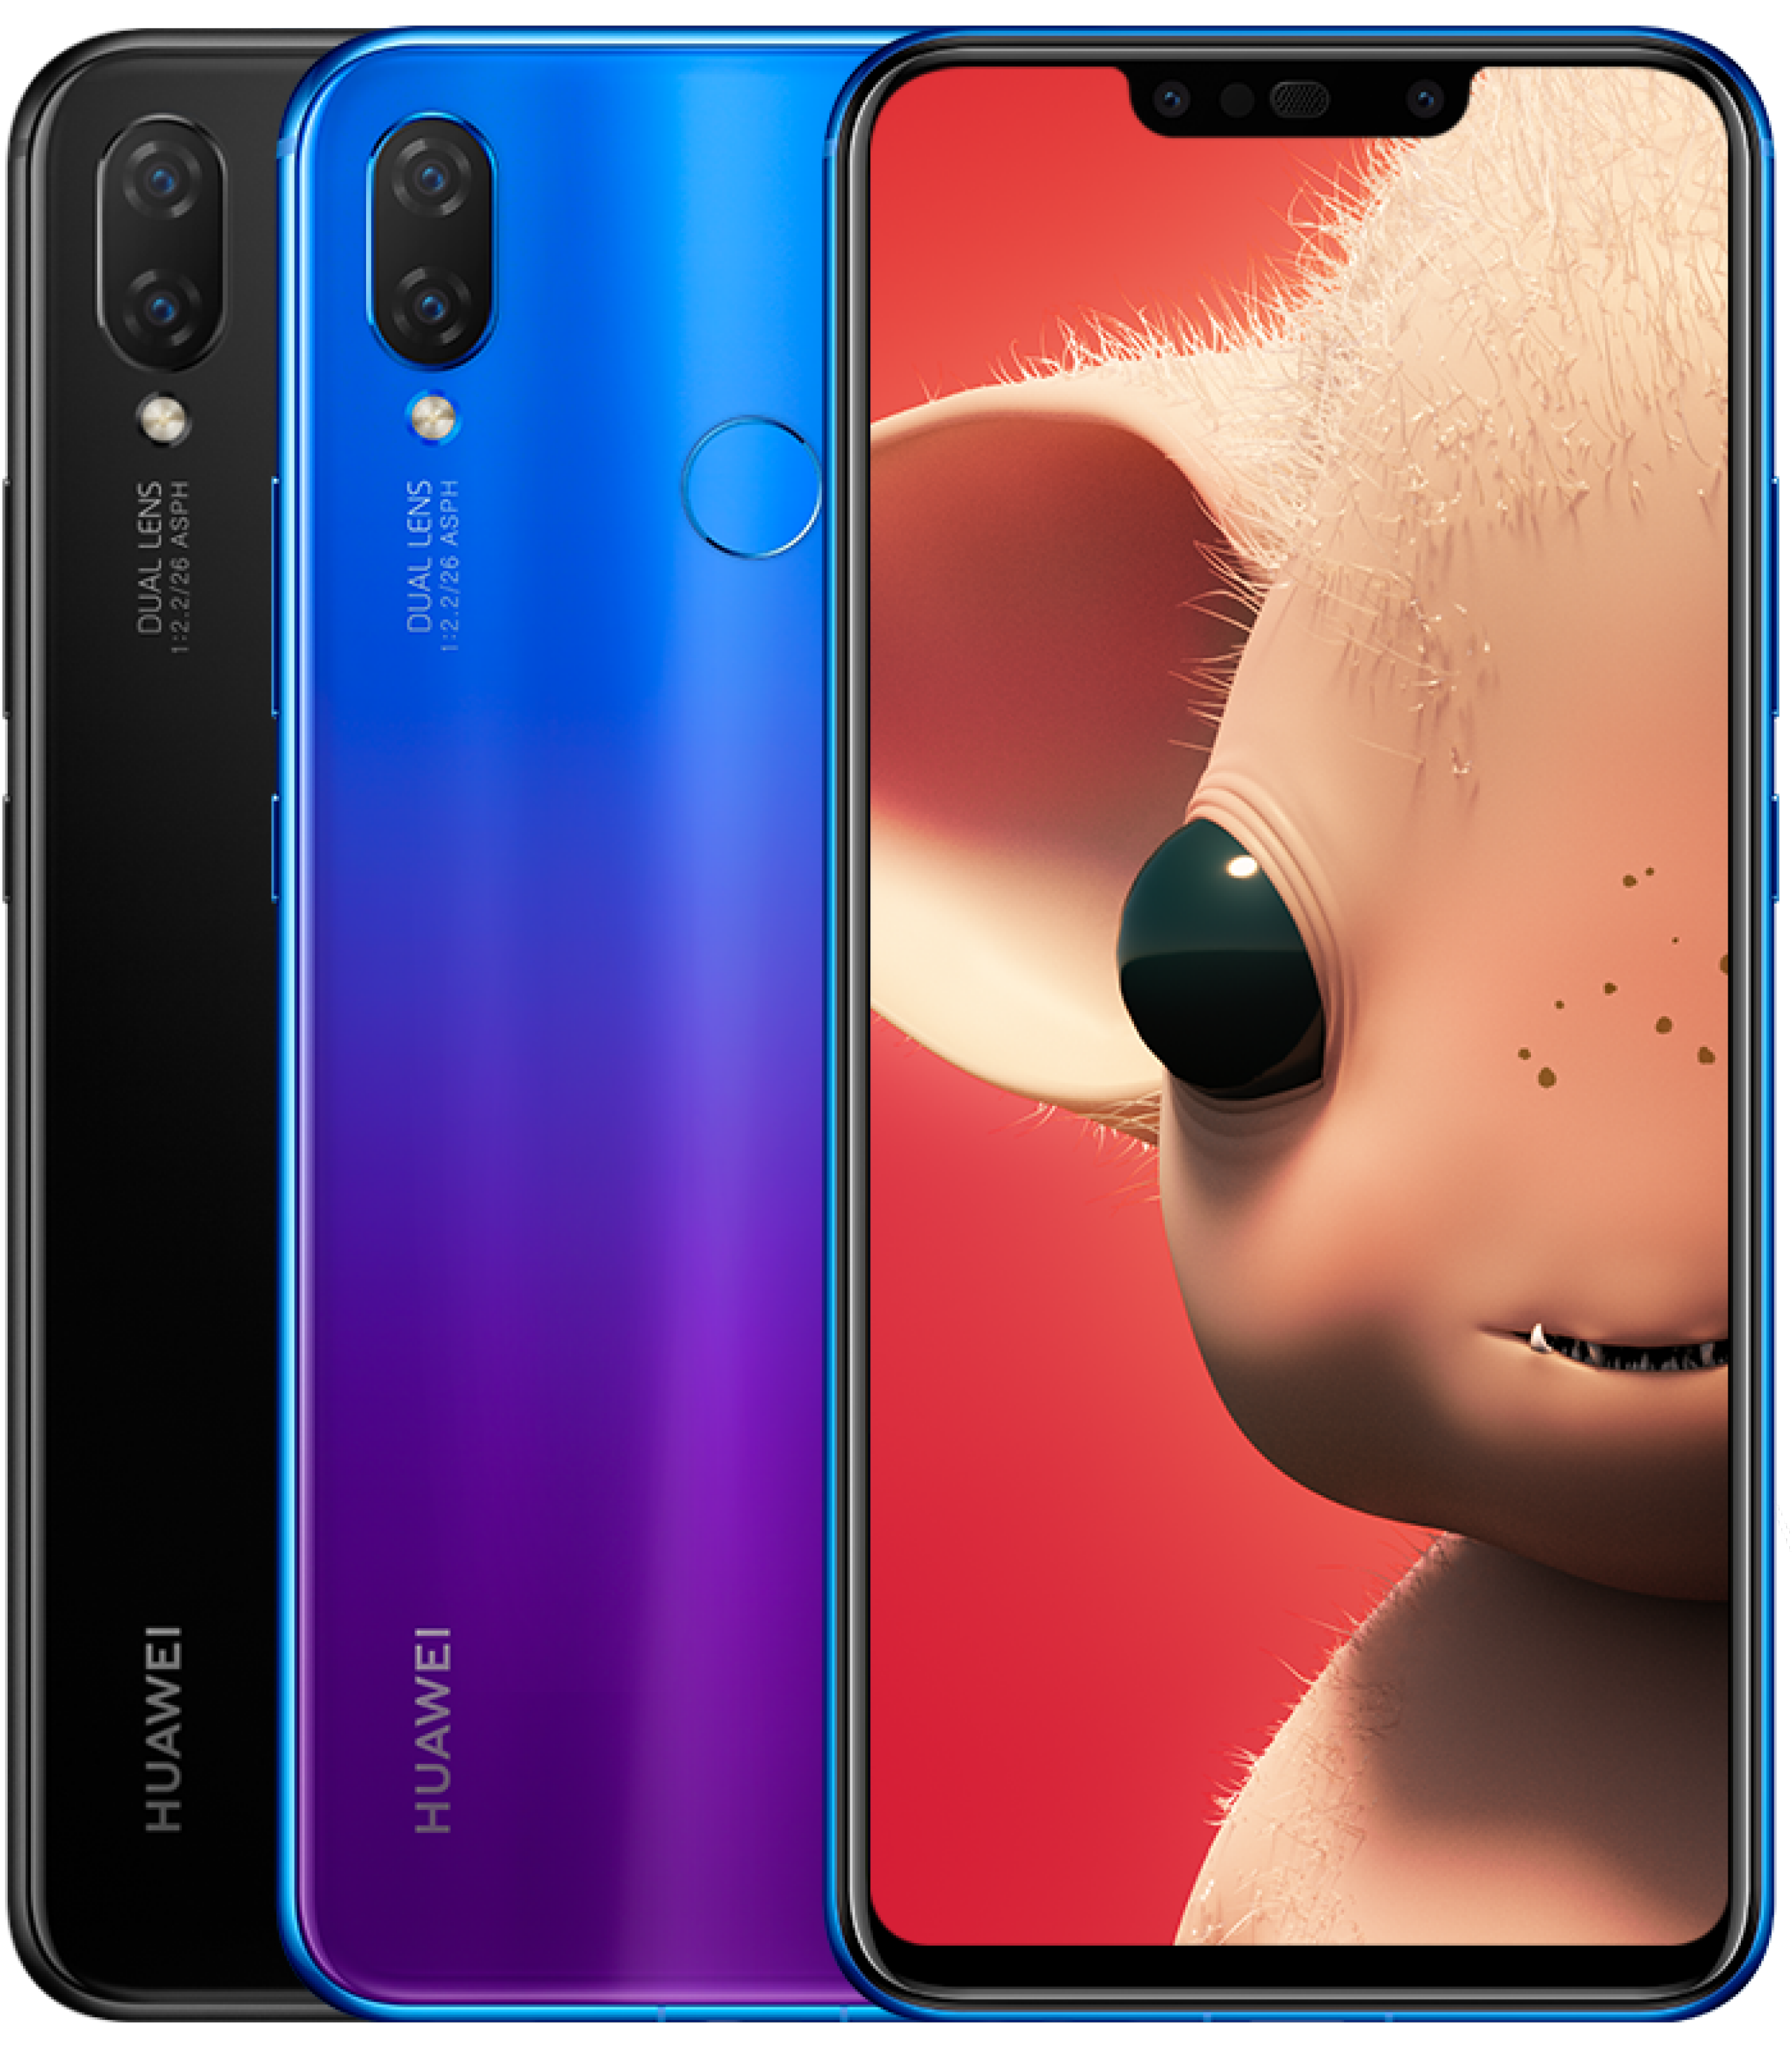 Huawei P Smart Plus 2018 Smartphone Review Notebookcheck